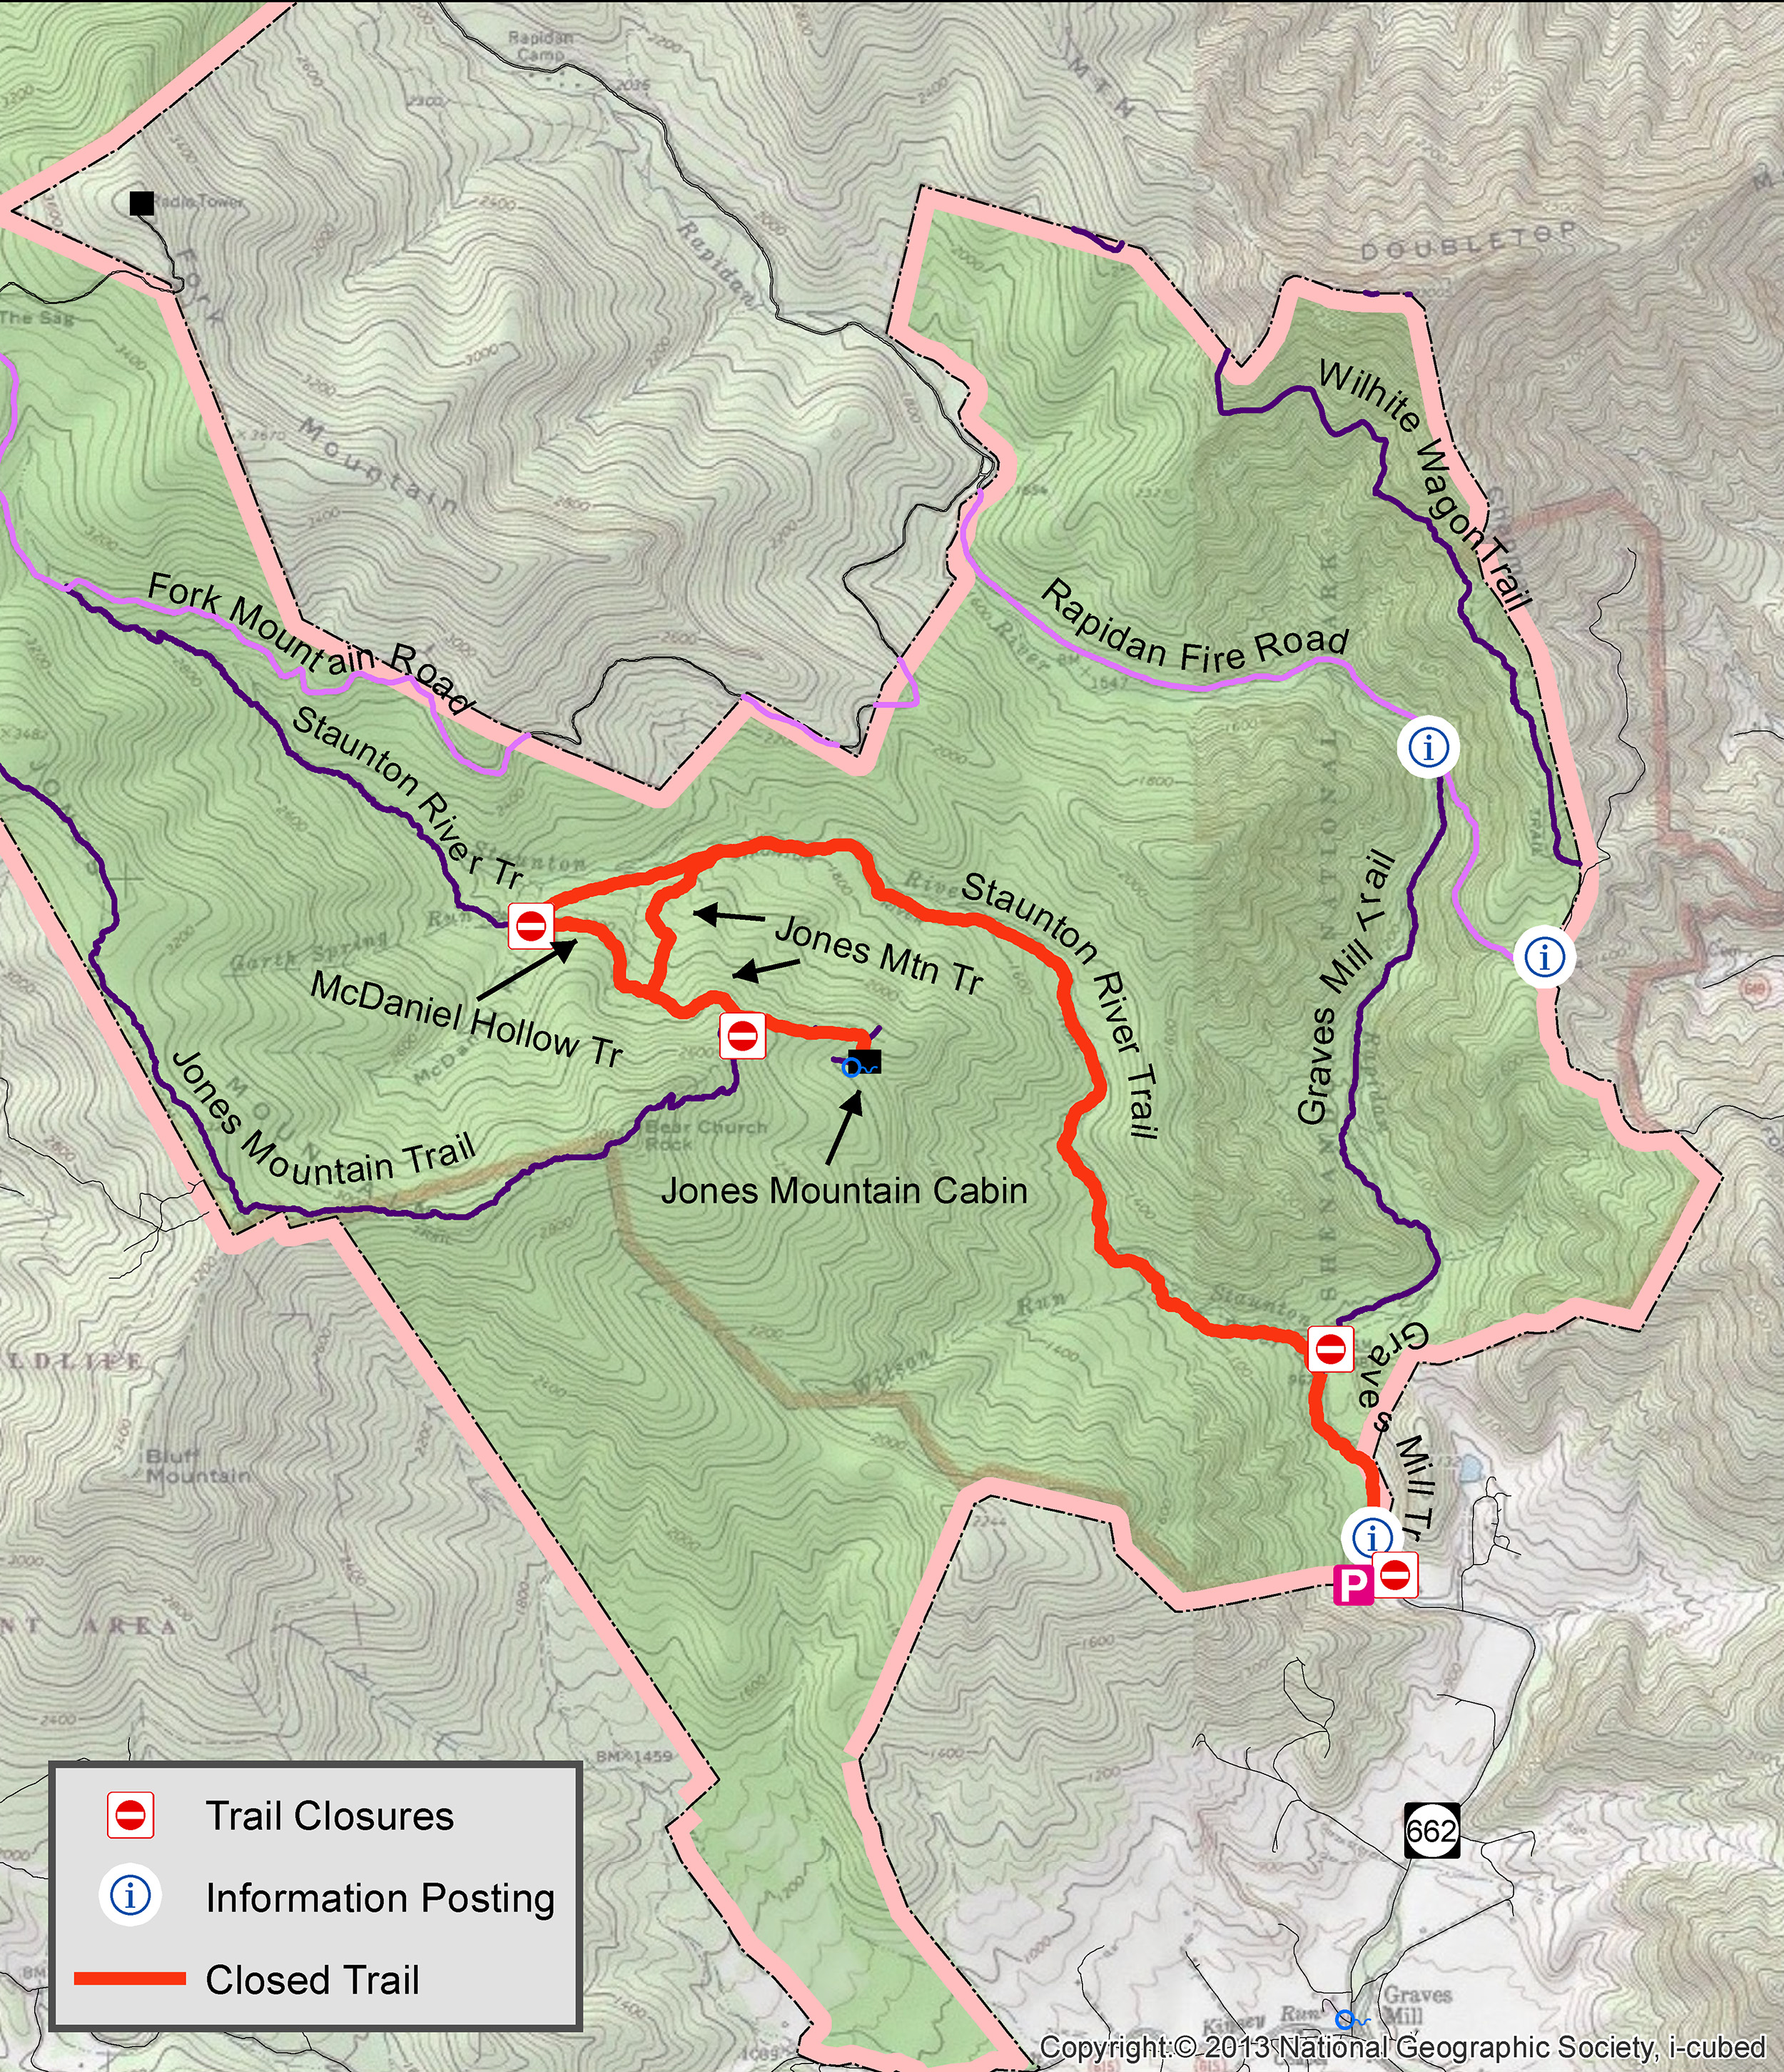 A map of closed trails near Jones River Cabin.